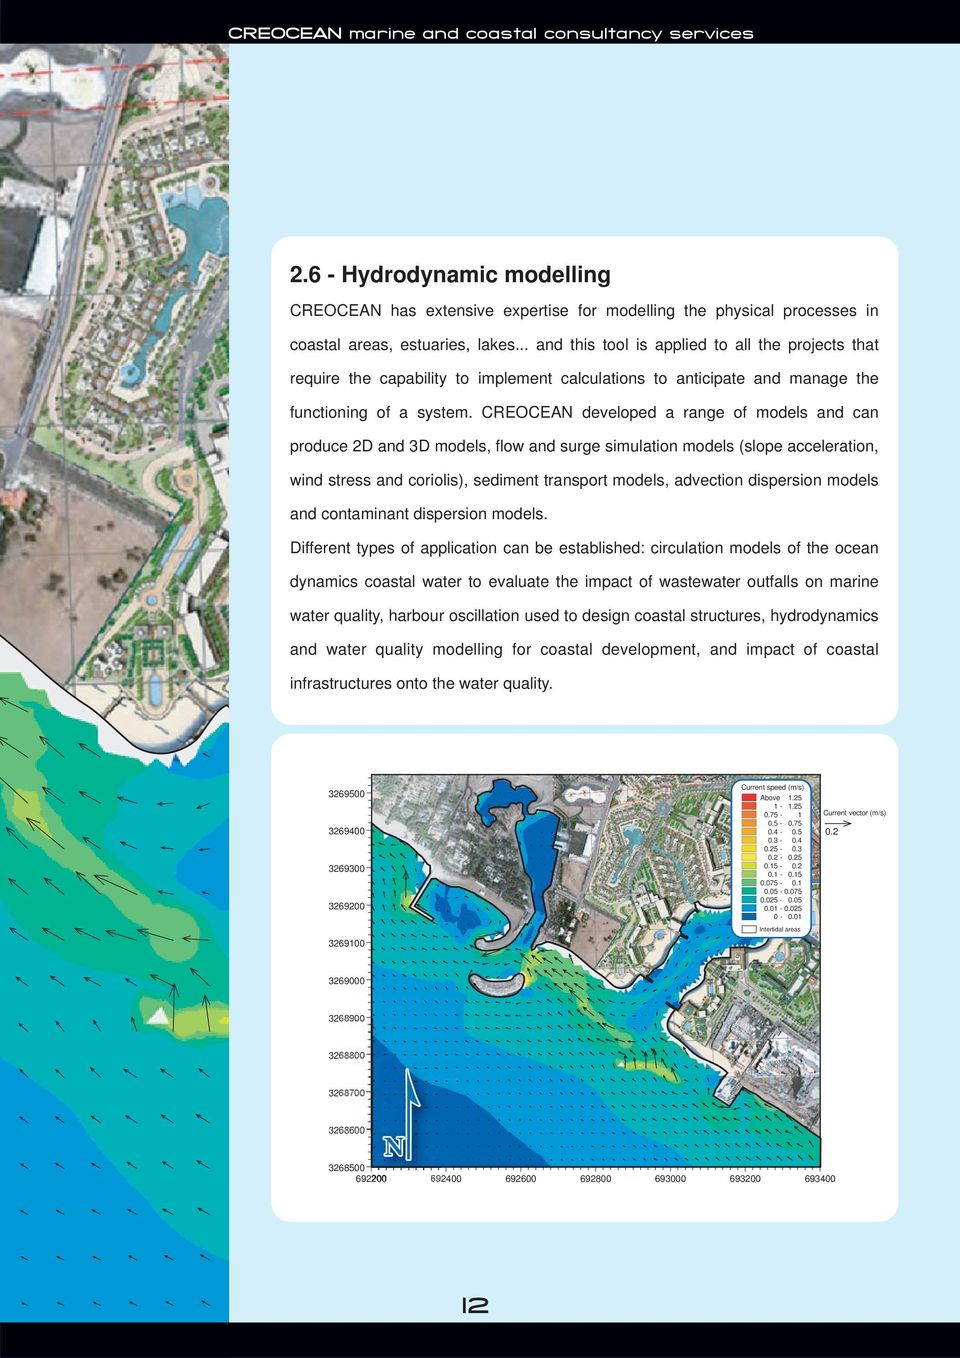 CREOCEAN developed a range of models and can produce 2D and 3D models, flow and surge simulation models (slope acceleration, wind stress and coriolis), sediment transport models, advection dispersion